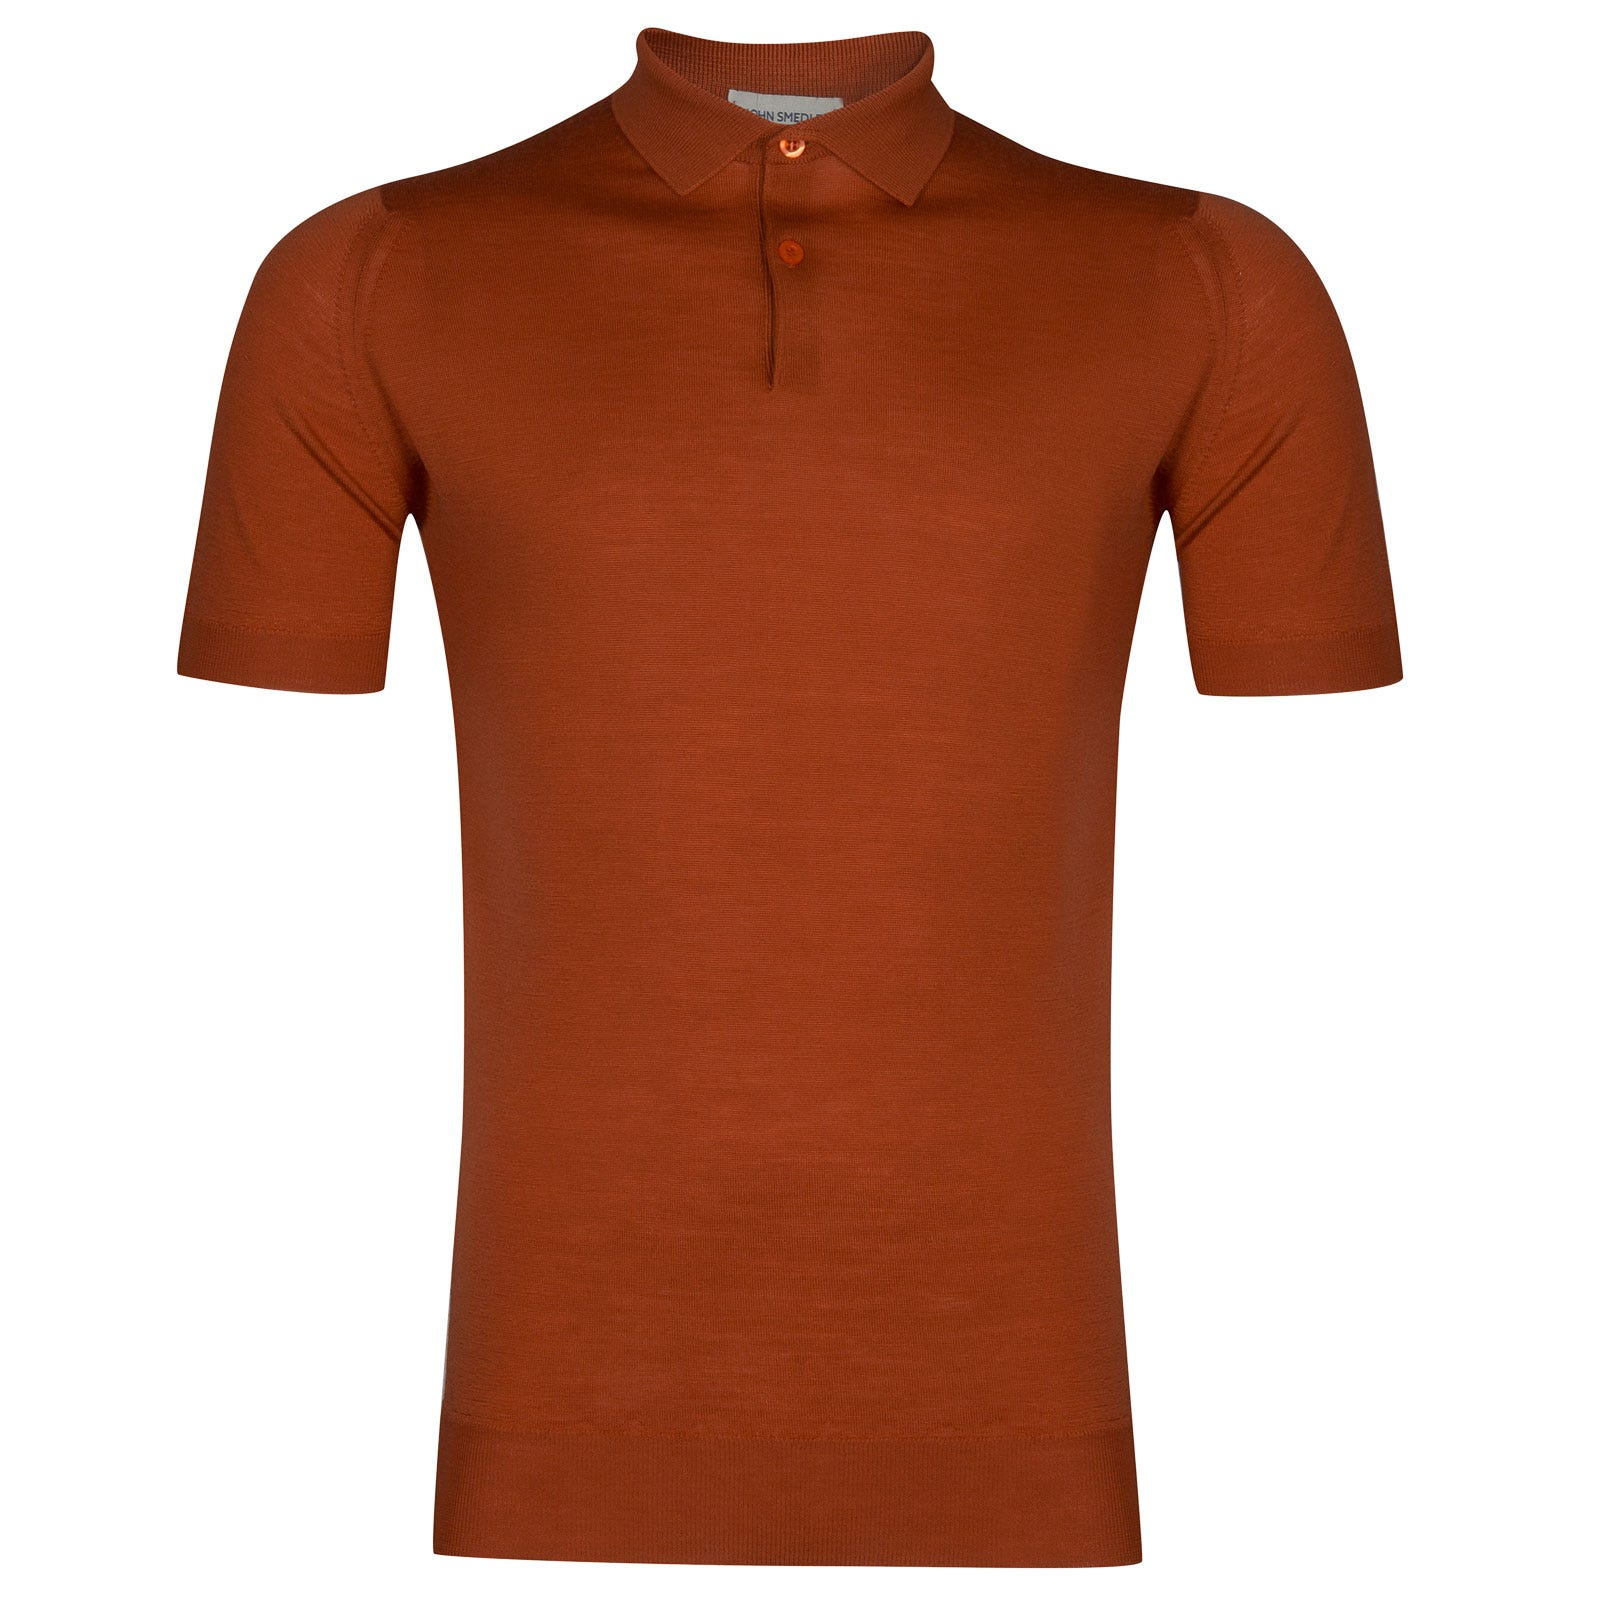 John Smedley payton Merino Wool Shirt in Flare Orange-S